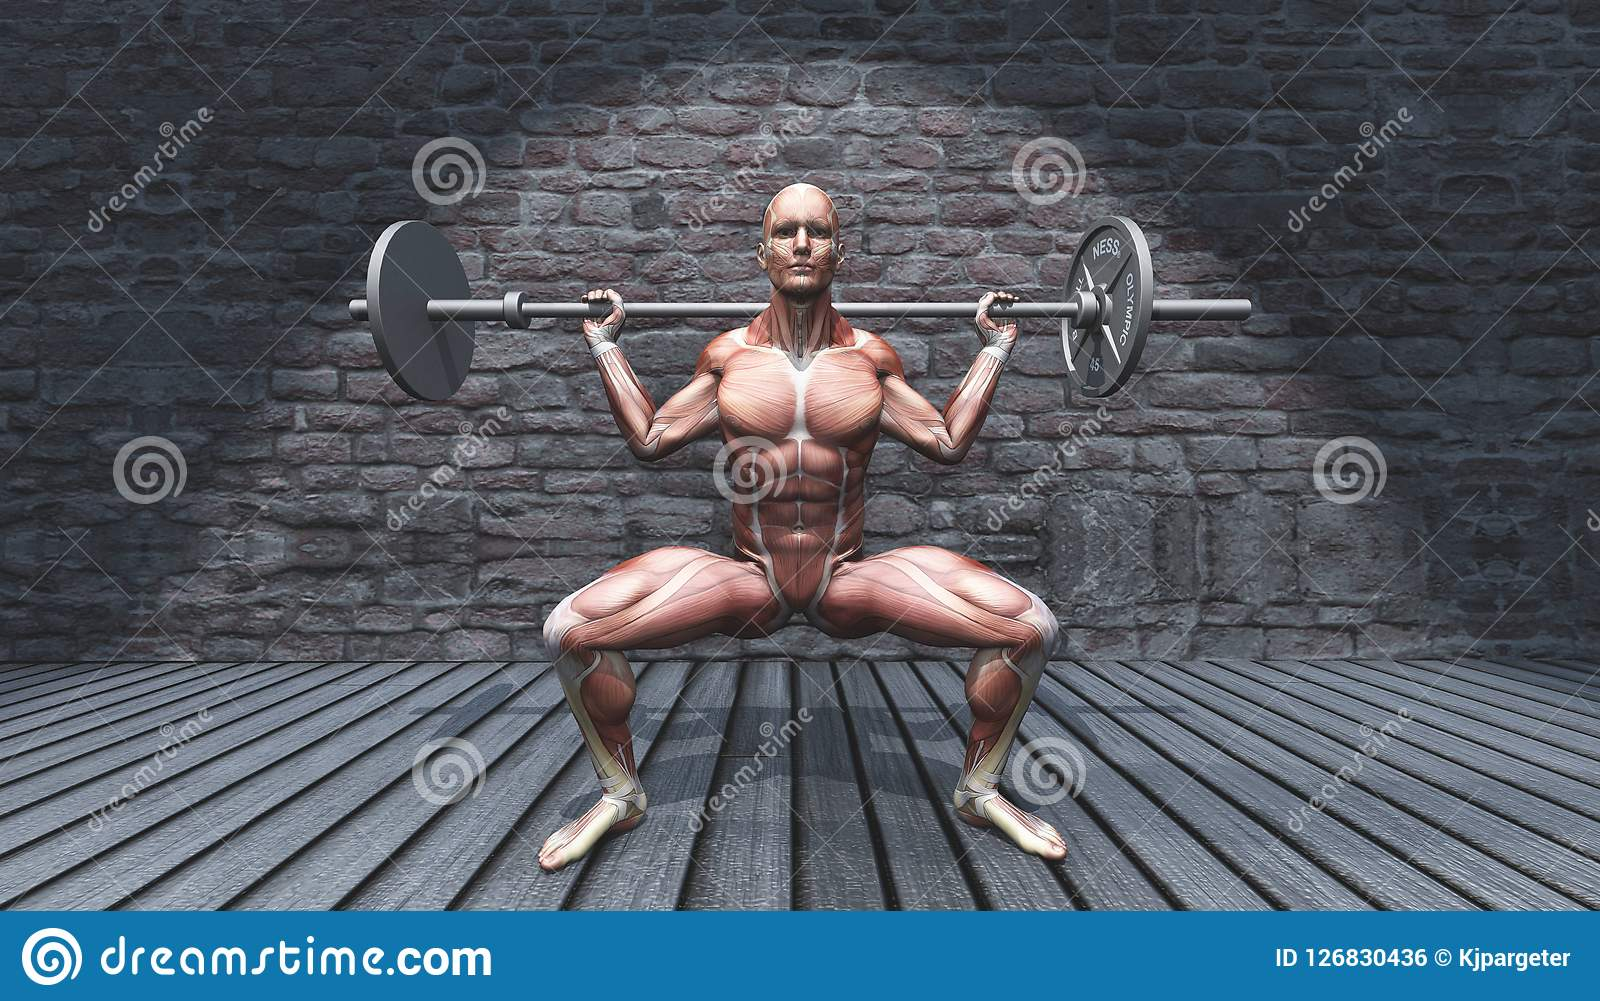 3D male figure in barbell squat pose in grunge interior